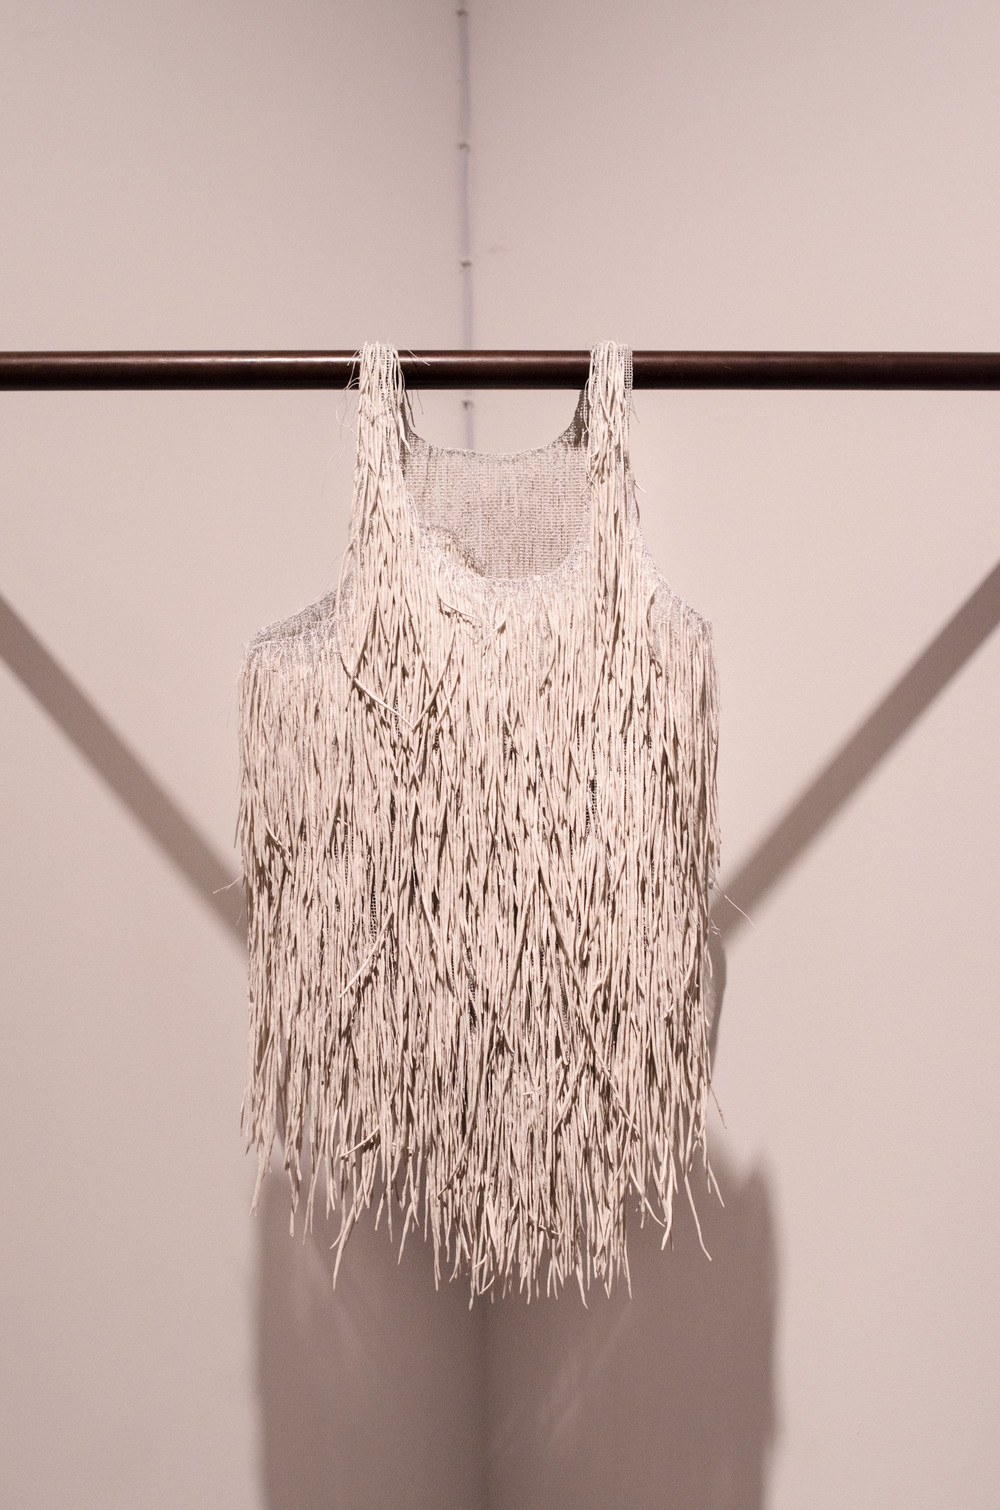 "Undershirt from the installation ""One By One"", 2013"